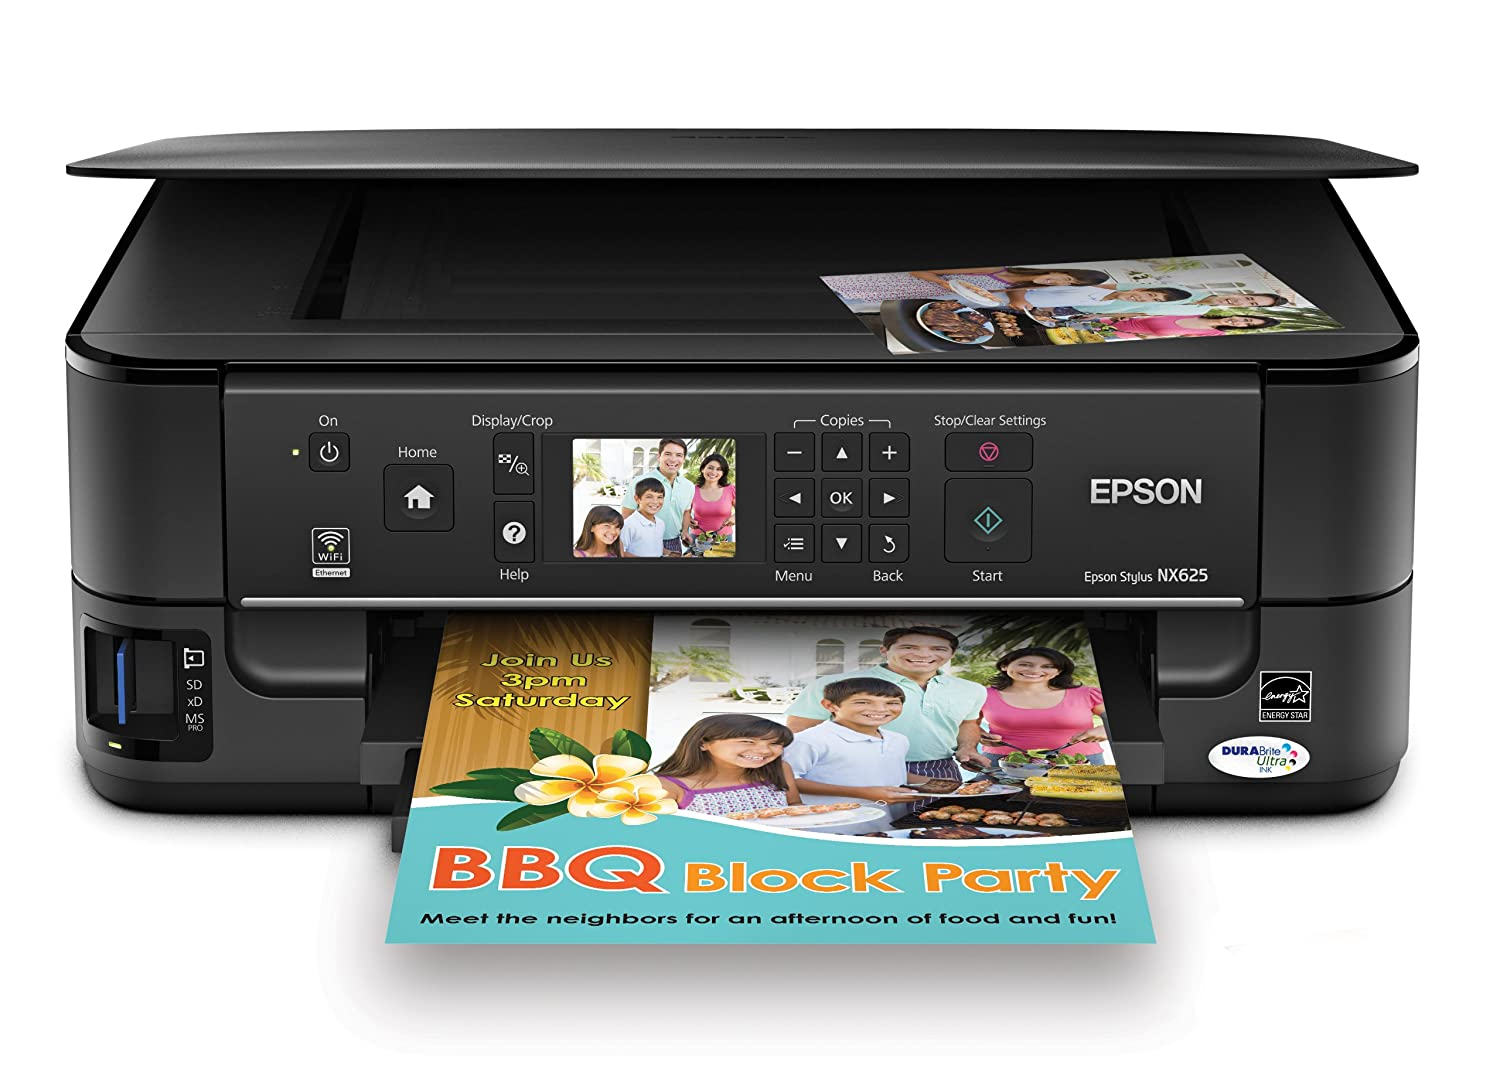 Amazon.com: Epson Stylus NX625 Wireless All-in-One Color Inkjet Printer,  Copier, Scanner (C11CA70271): Electronics